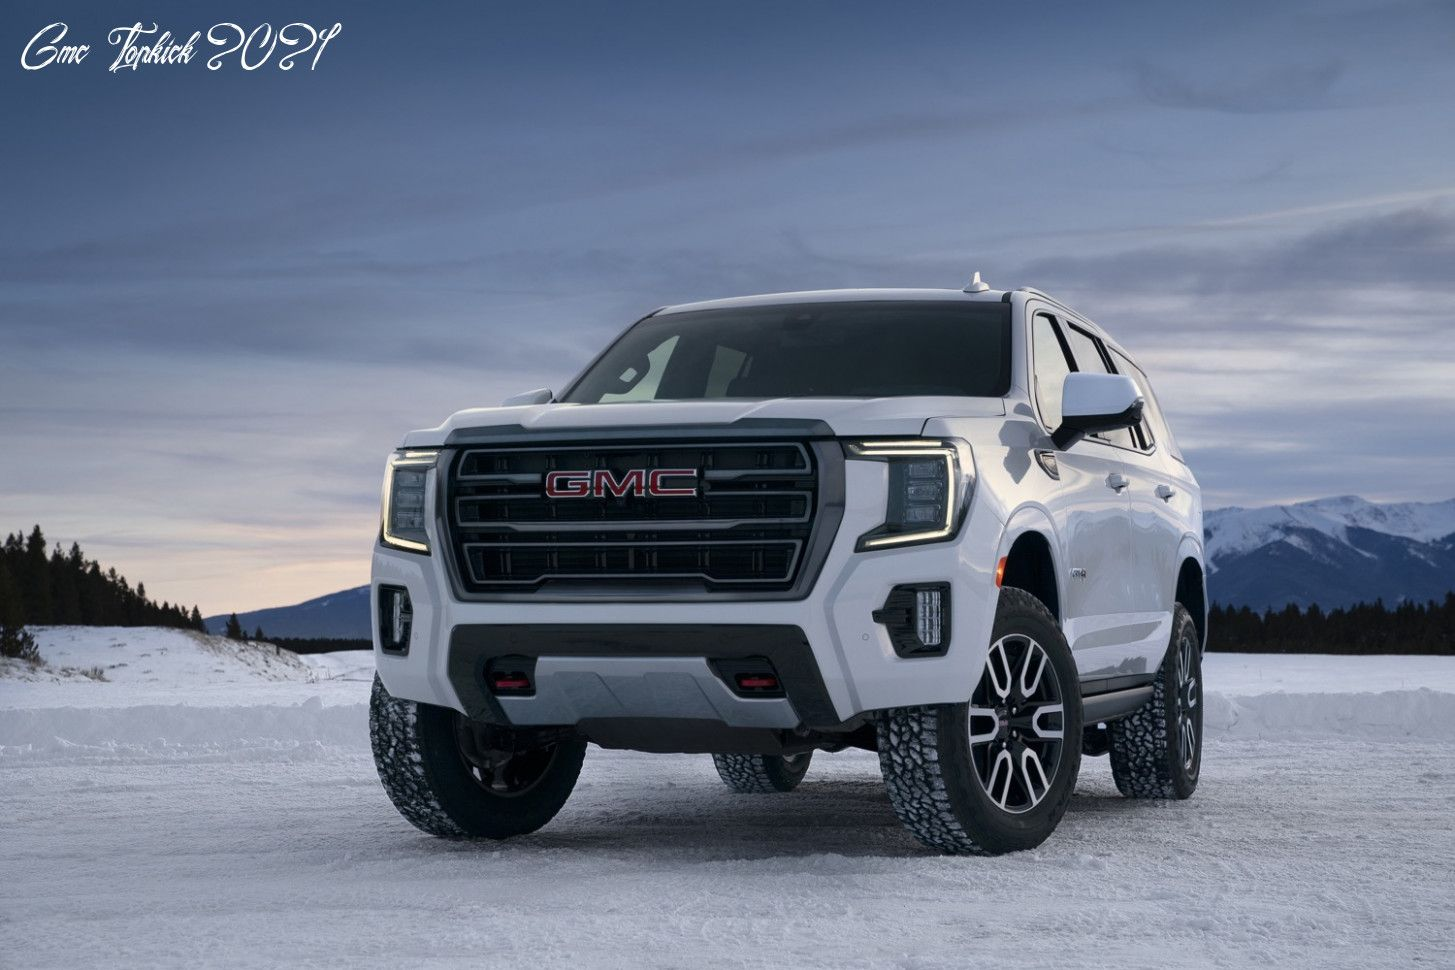 Gmc Topkick 2021 Model In 2020 Gmc Yukon Suv Gmc